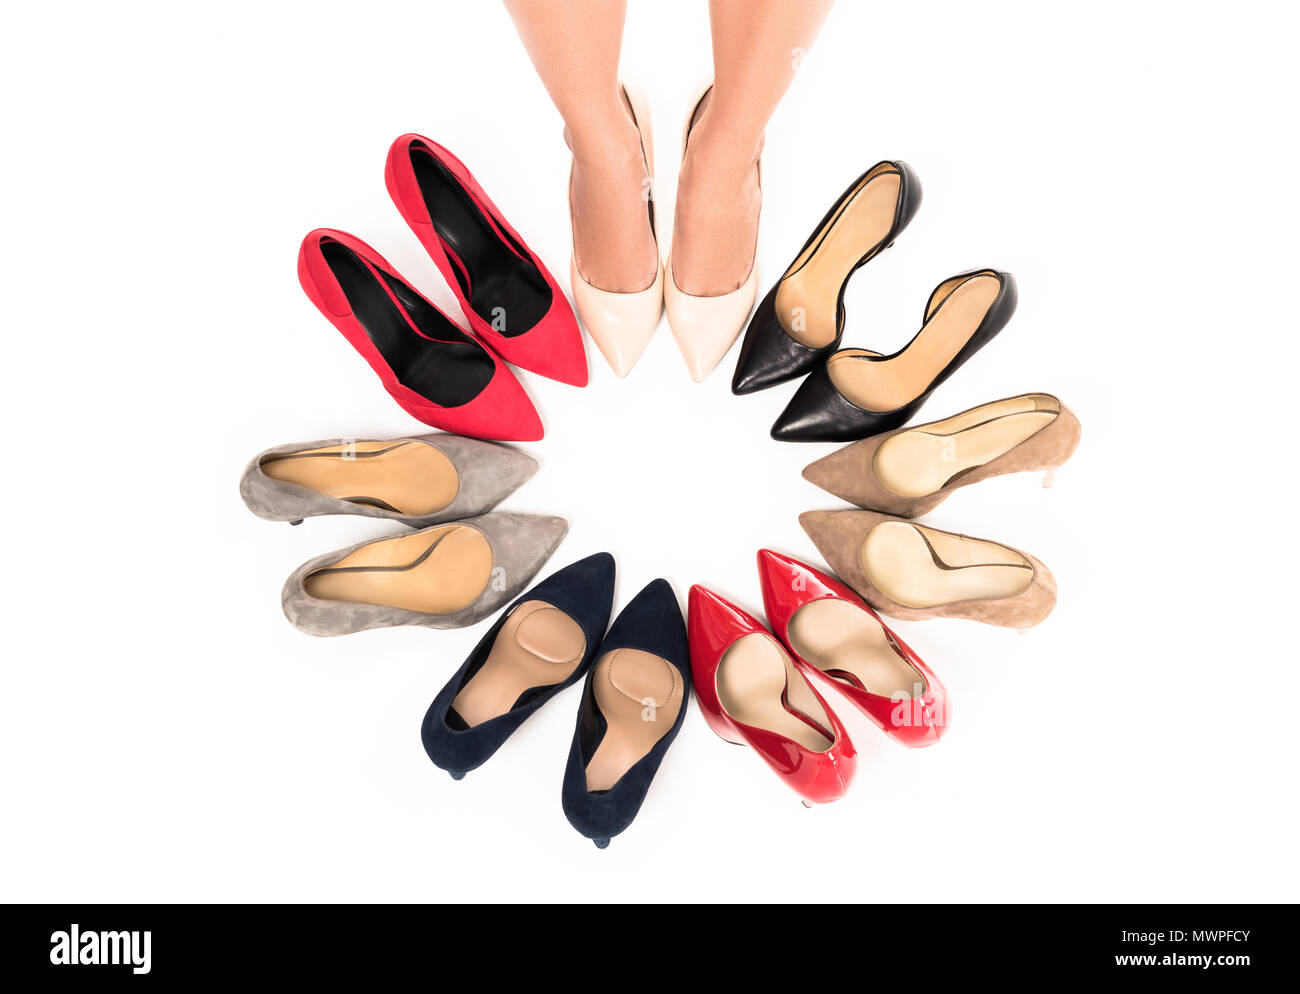 partial view of woman standing in circle with arranged stylish high heels isolated on white - Stock Image